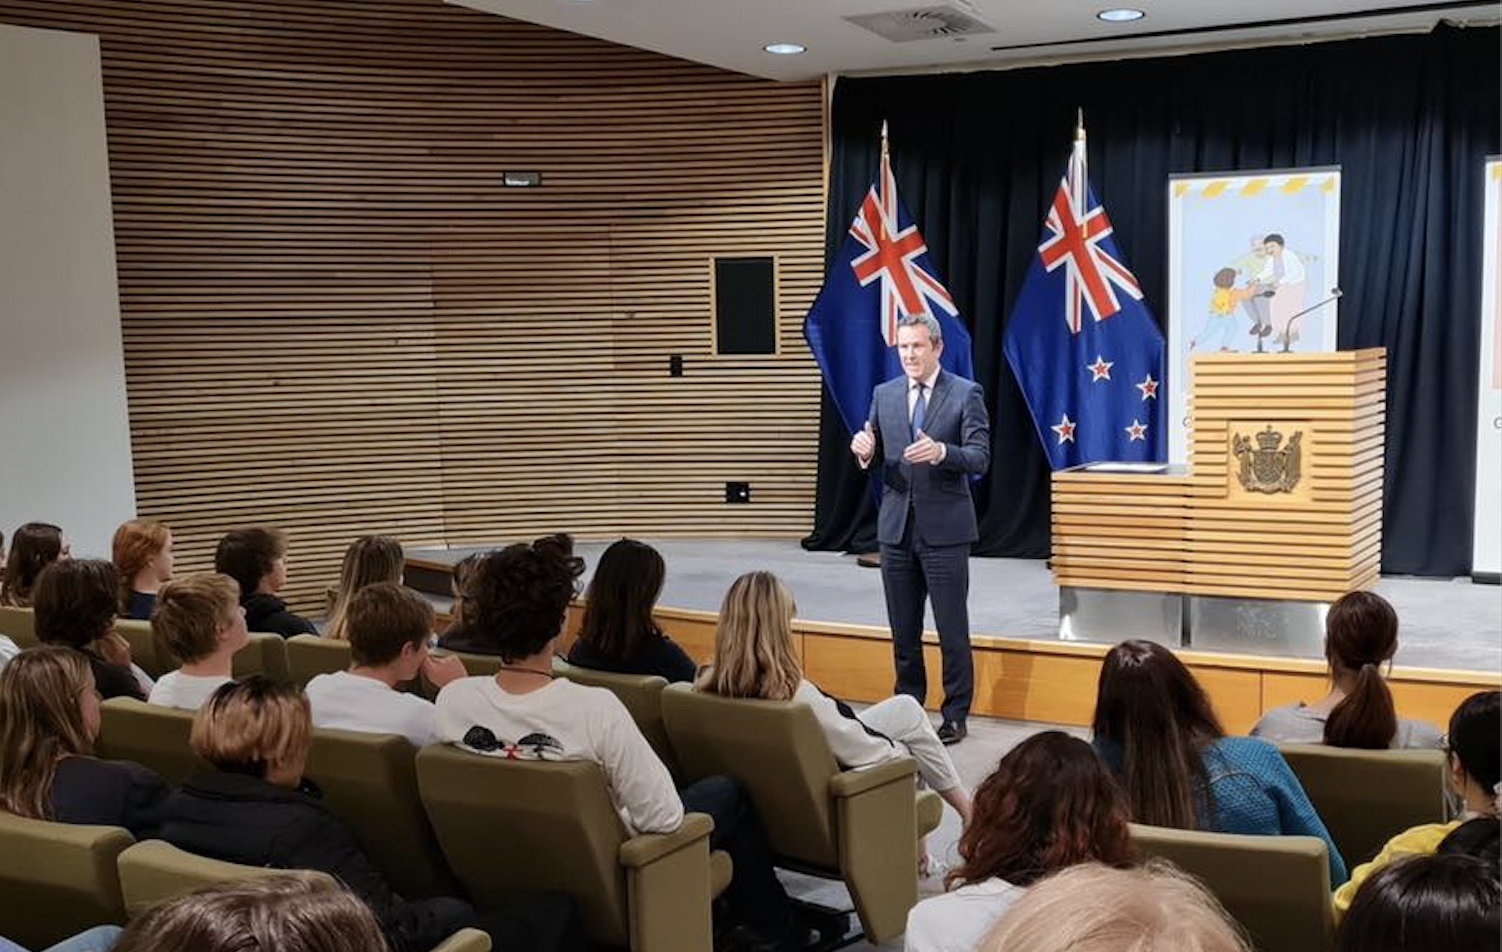 I was also very pleased to host students from Glendowie College in Wellington several days ago, which also served as a welcome reminder of home.